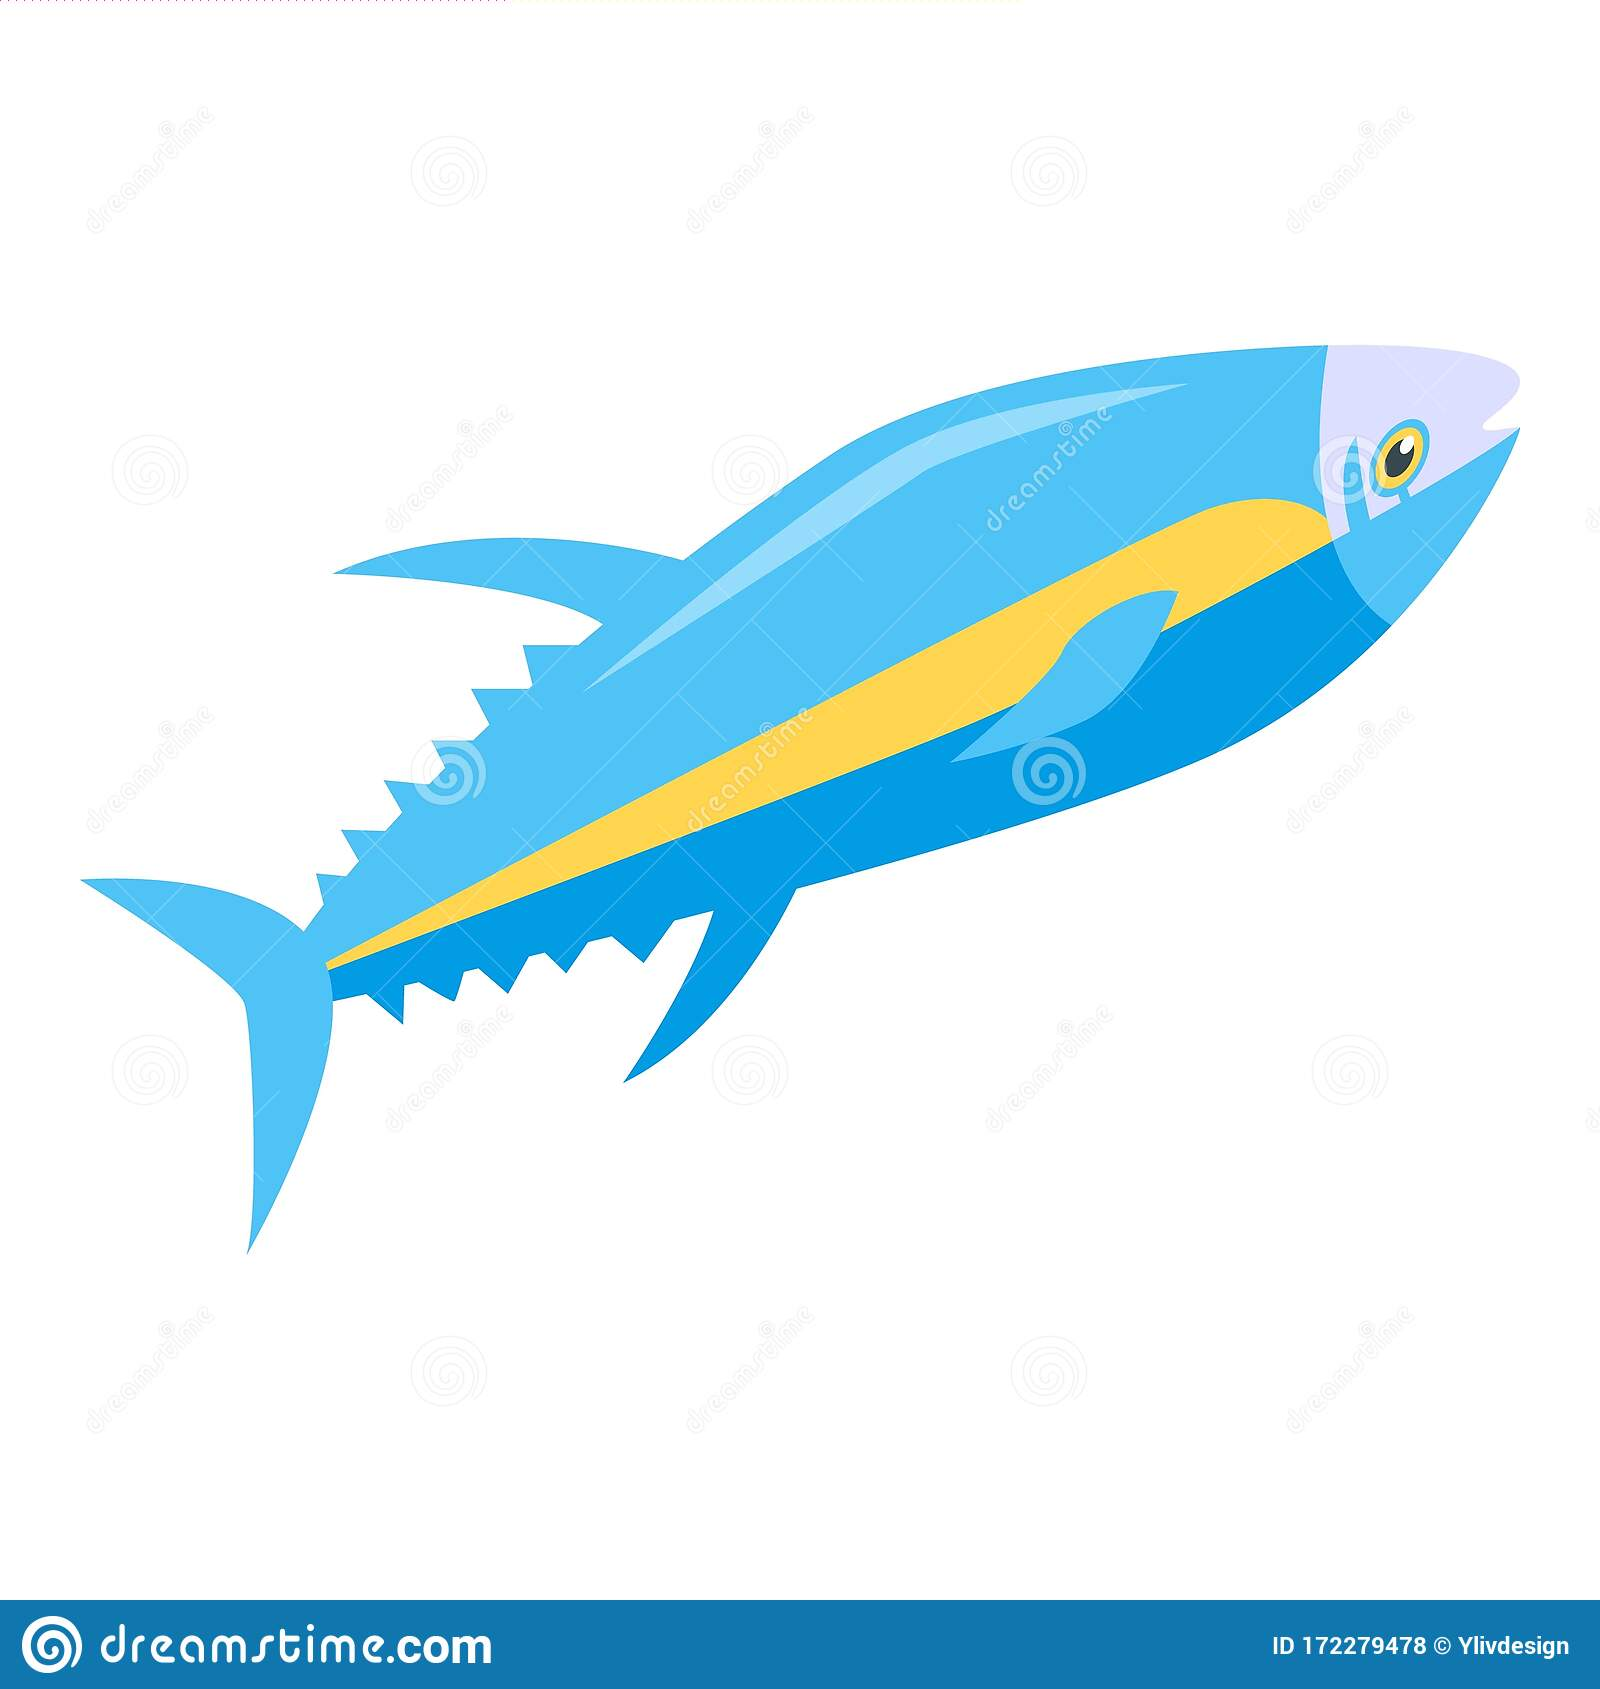 tuna fish icon isometric style stock vector illustration of nature fish 172279478 dreamstime com